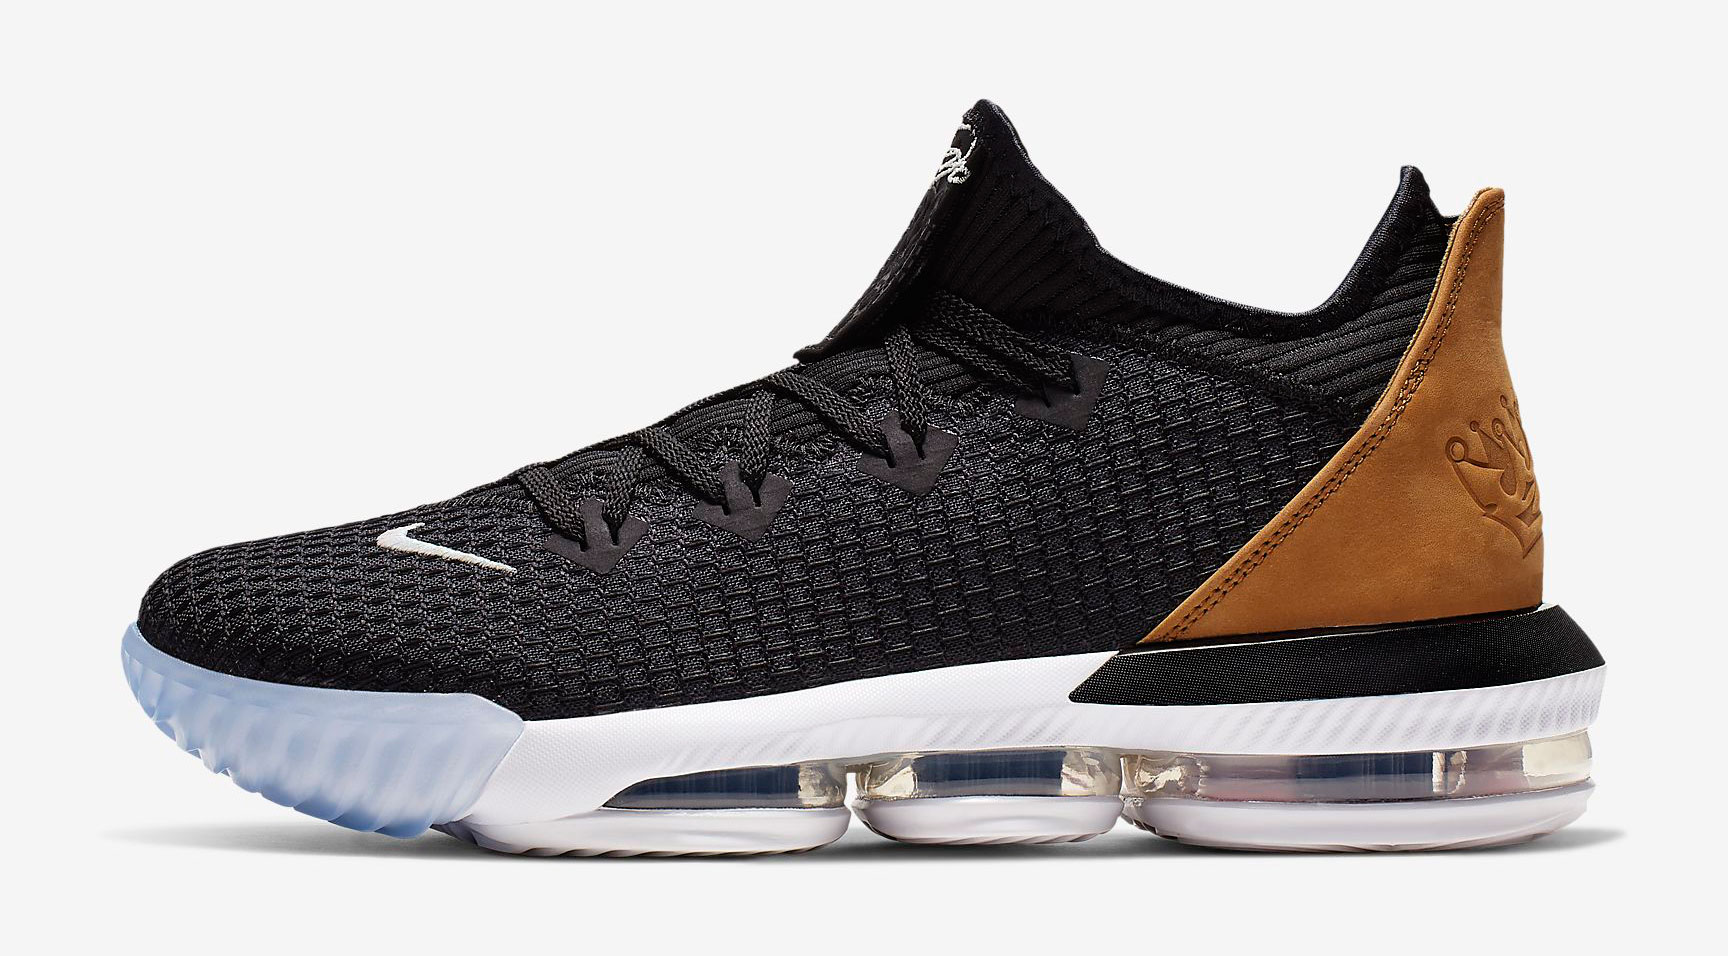 nike-lebron-16-low-soundtrack-release-date-where-to-buy